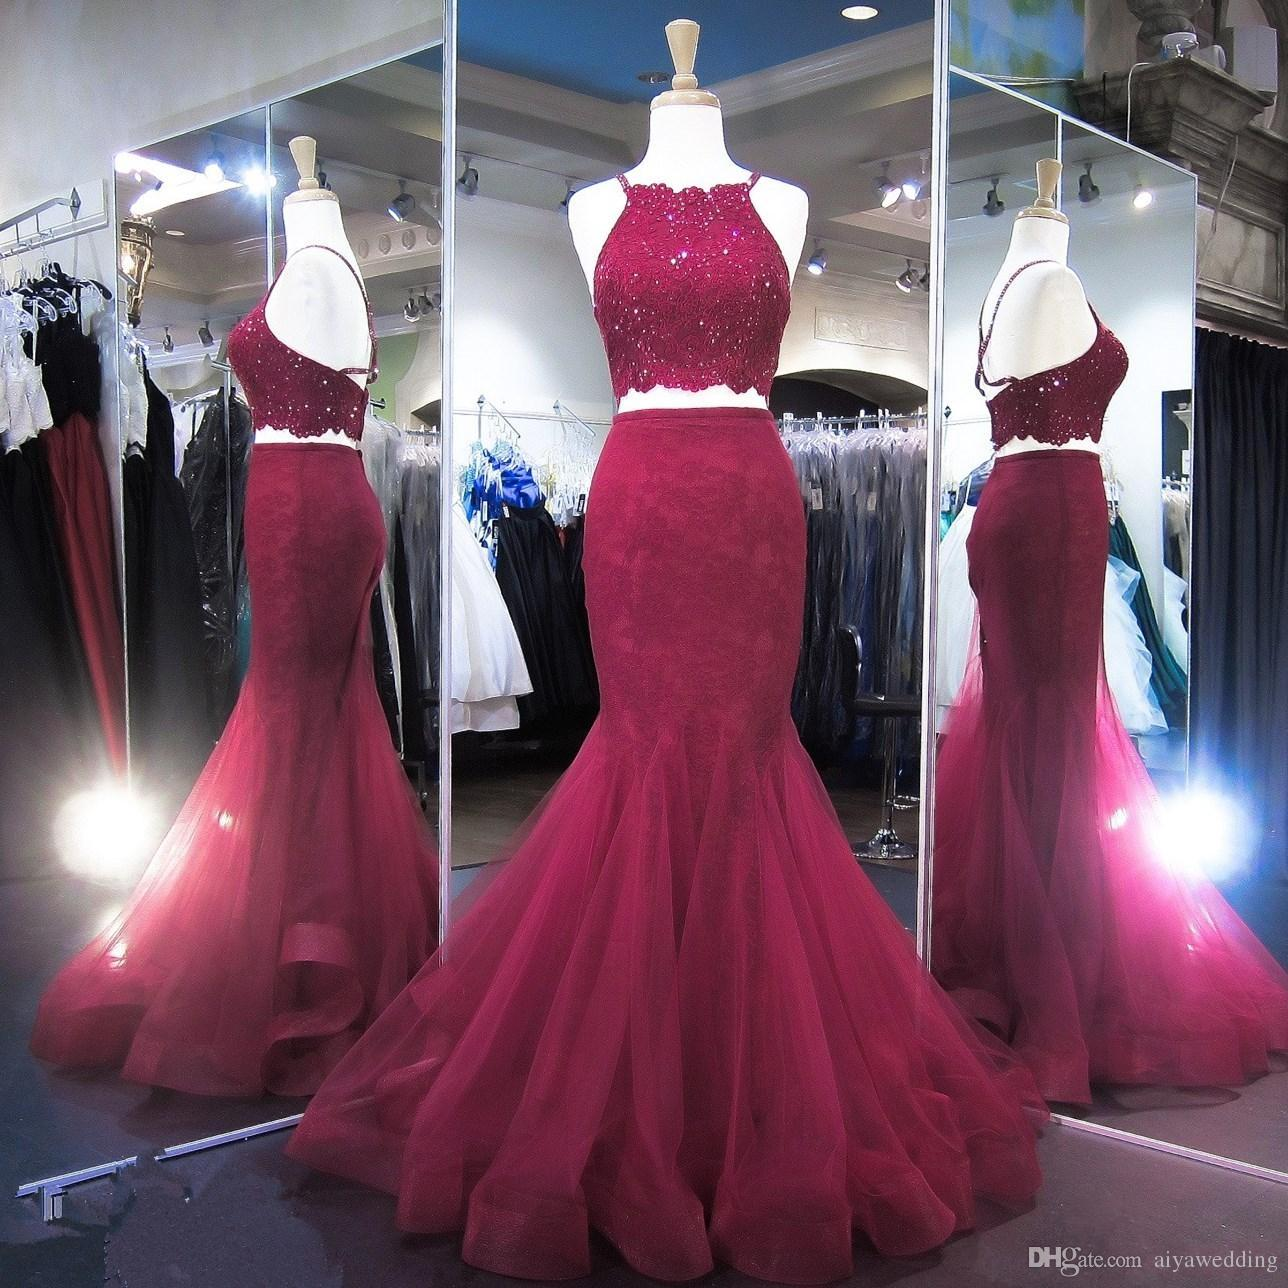 Burgundy Lace Two Pieces Prom Dresses Long Halter Neck Appliques African Mermaid Prom 2K18 Cheap Formal Party Gowns